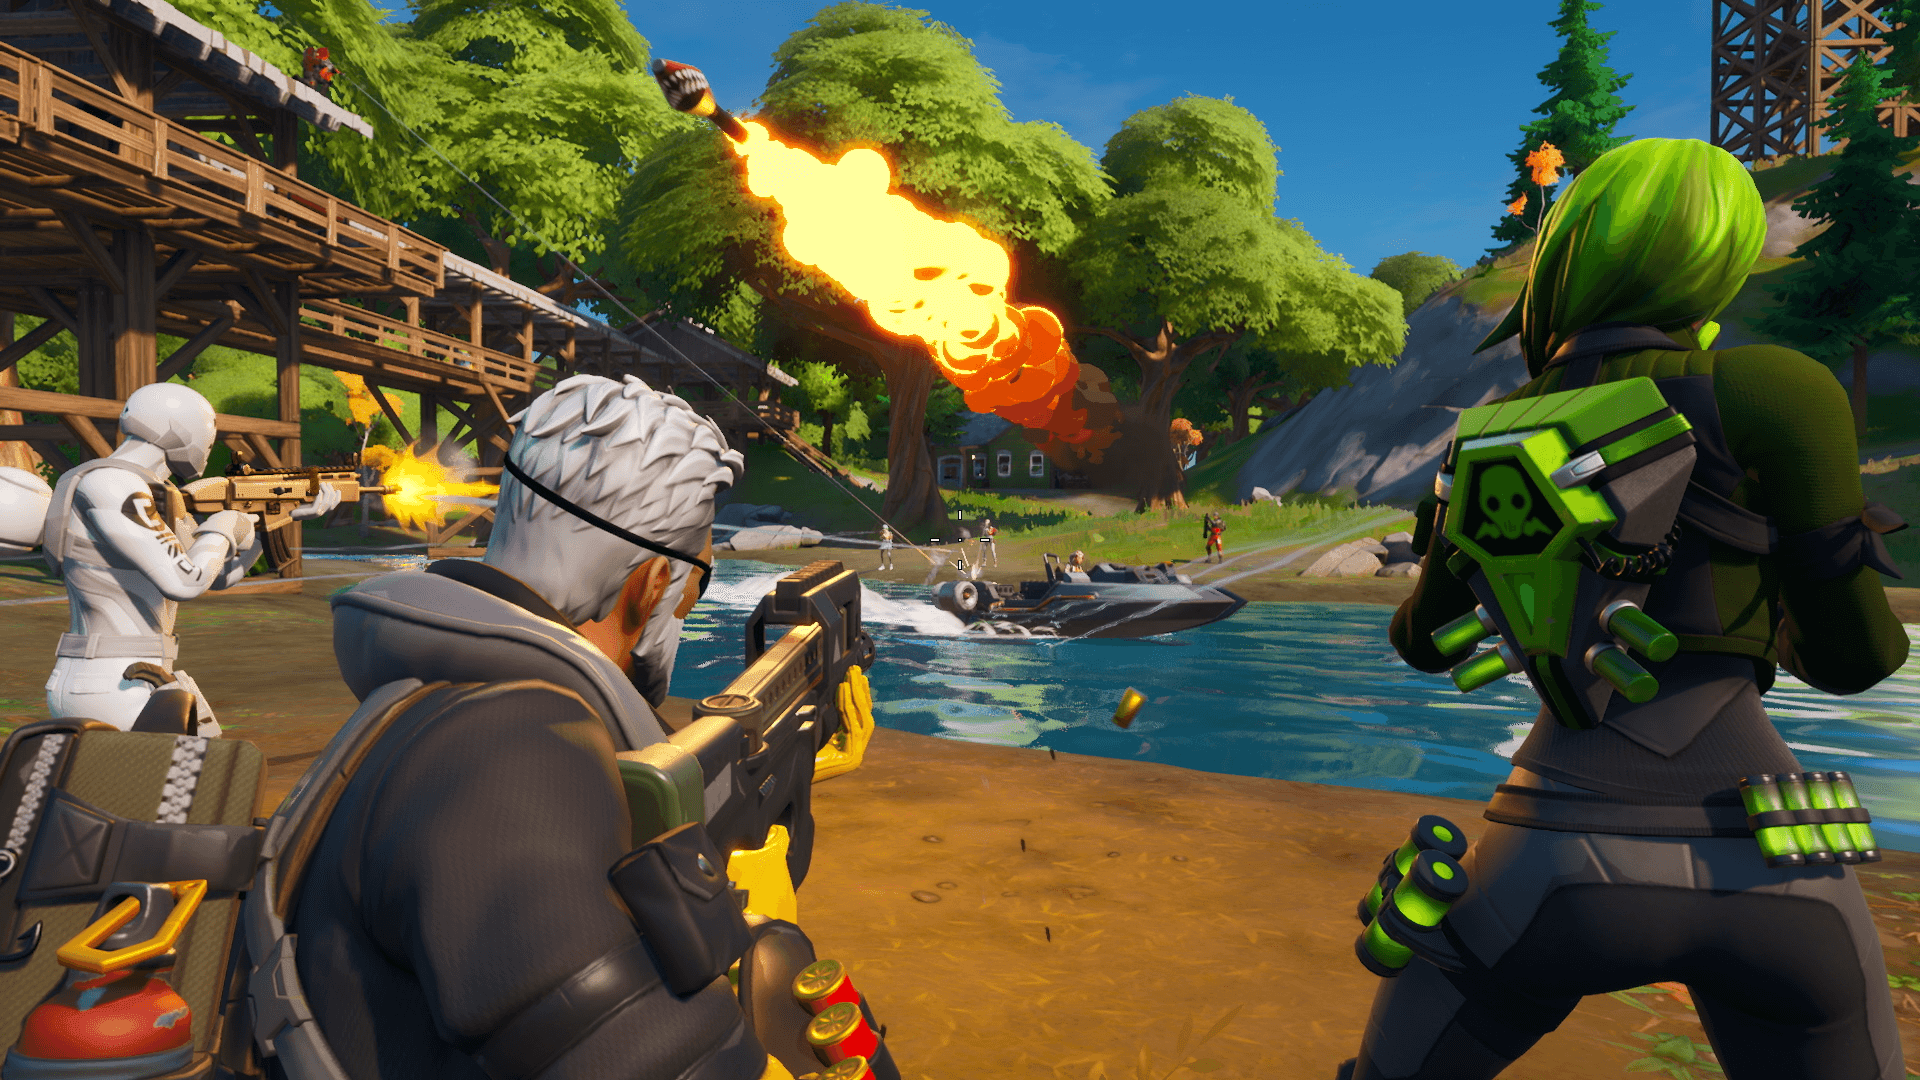 Fortnite players firing weapons at opponents.